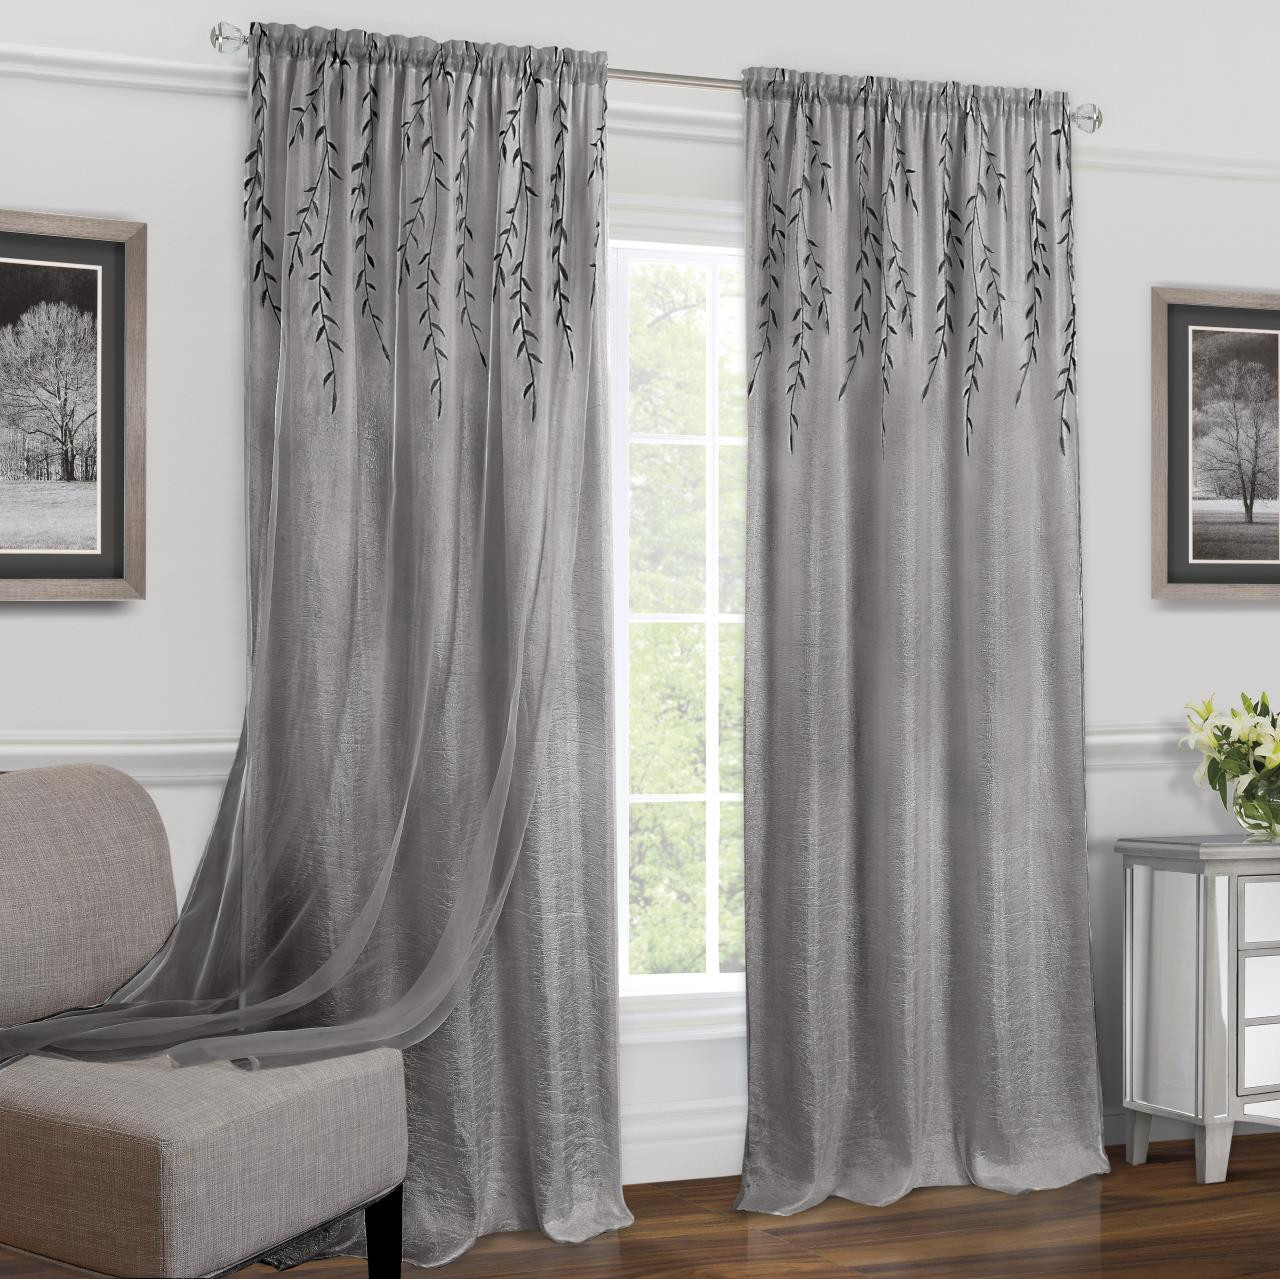 Willow Curtain - 054006245002